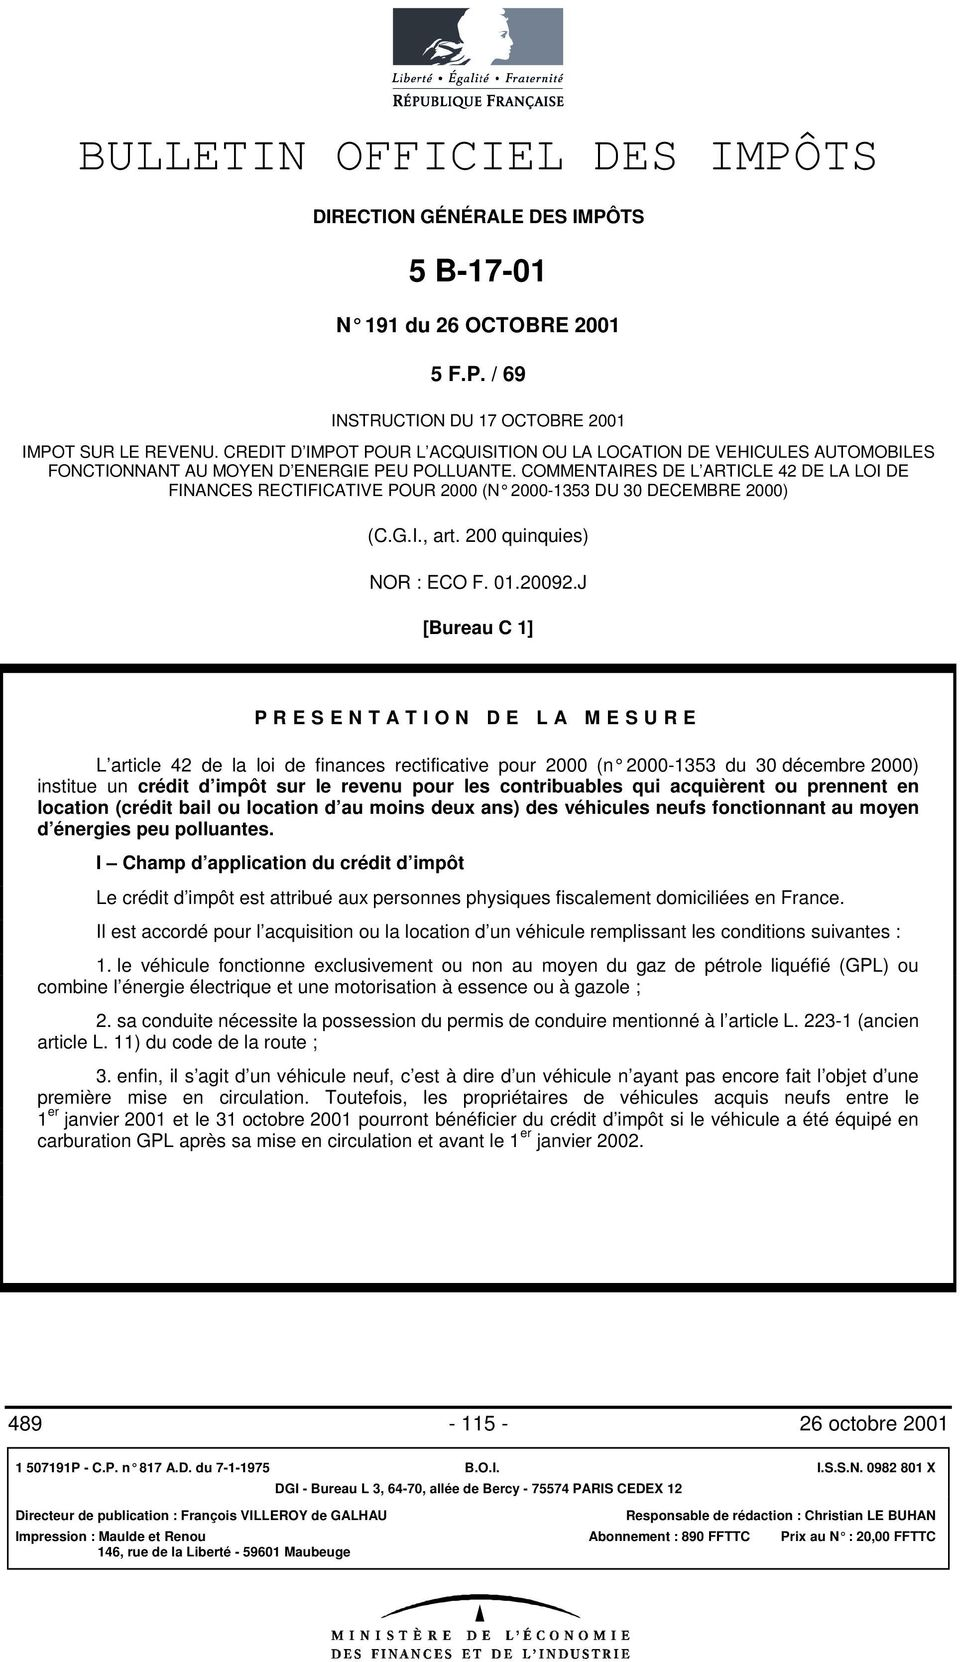 COMMENTAIRES DE L ARTICLE 42 DE LA LOI DE FINANCES RECTIFICATIVE POUR 2000 (N 2000-1353 DU 30 DECEMBRE 2000) (C.G.I., art. 200 quinquies) NOR : ECO F. 01.20092.